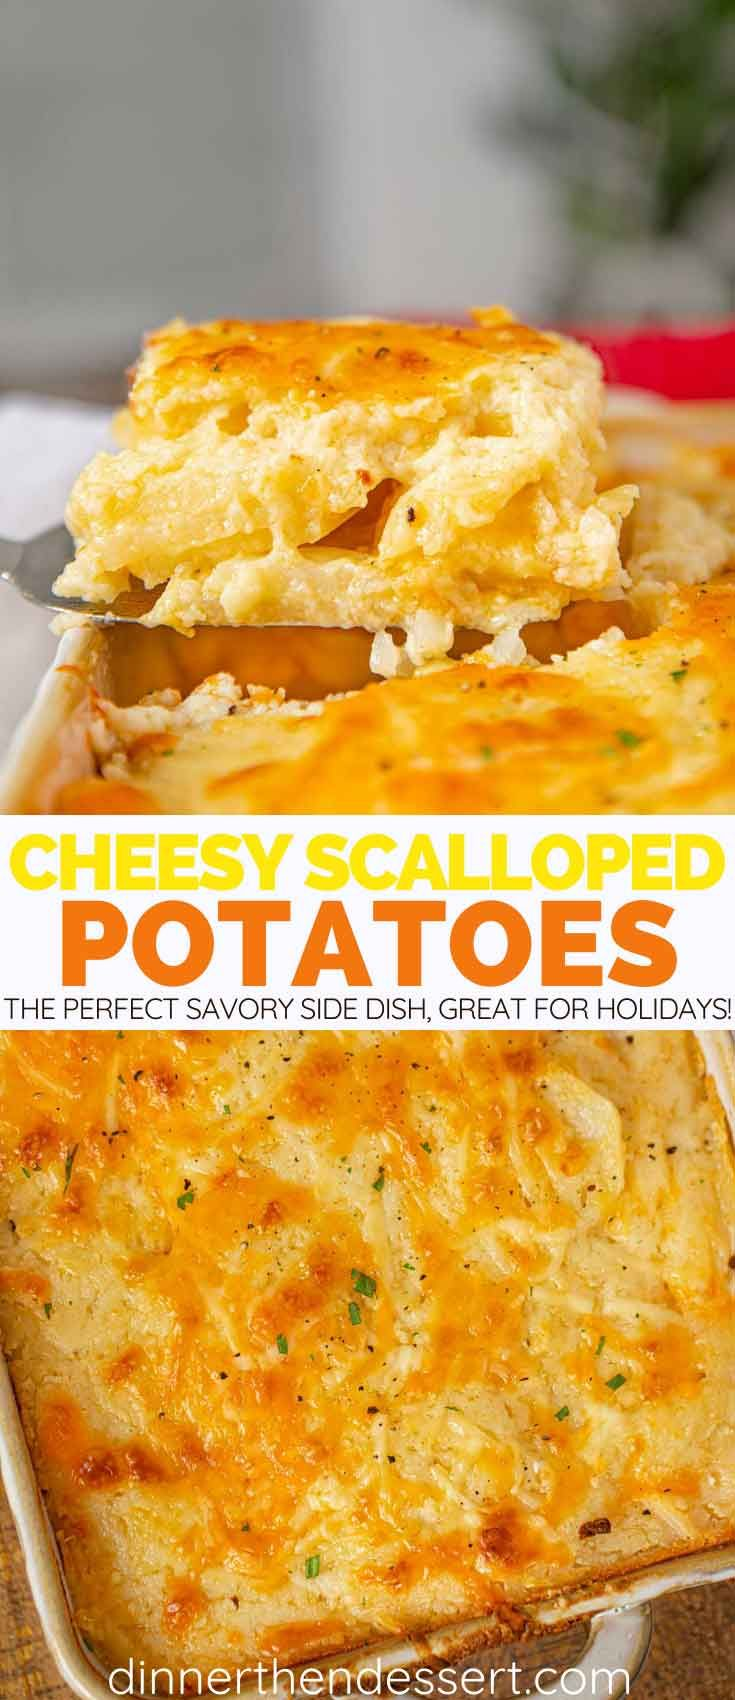 Scalloped Potatoes made with sliced potatoes, cream, and butter are the perfect side dish for the holidays or to bring to a potluck! #sidedish #potatoes #cheese #cheesy #dinnerthendessert #thanksgiving #christmas #holidays